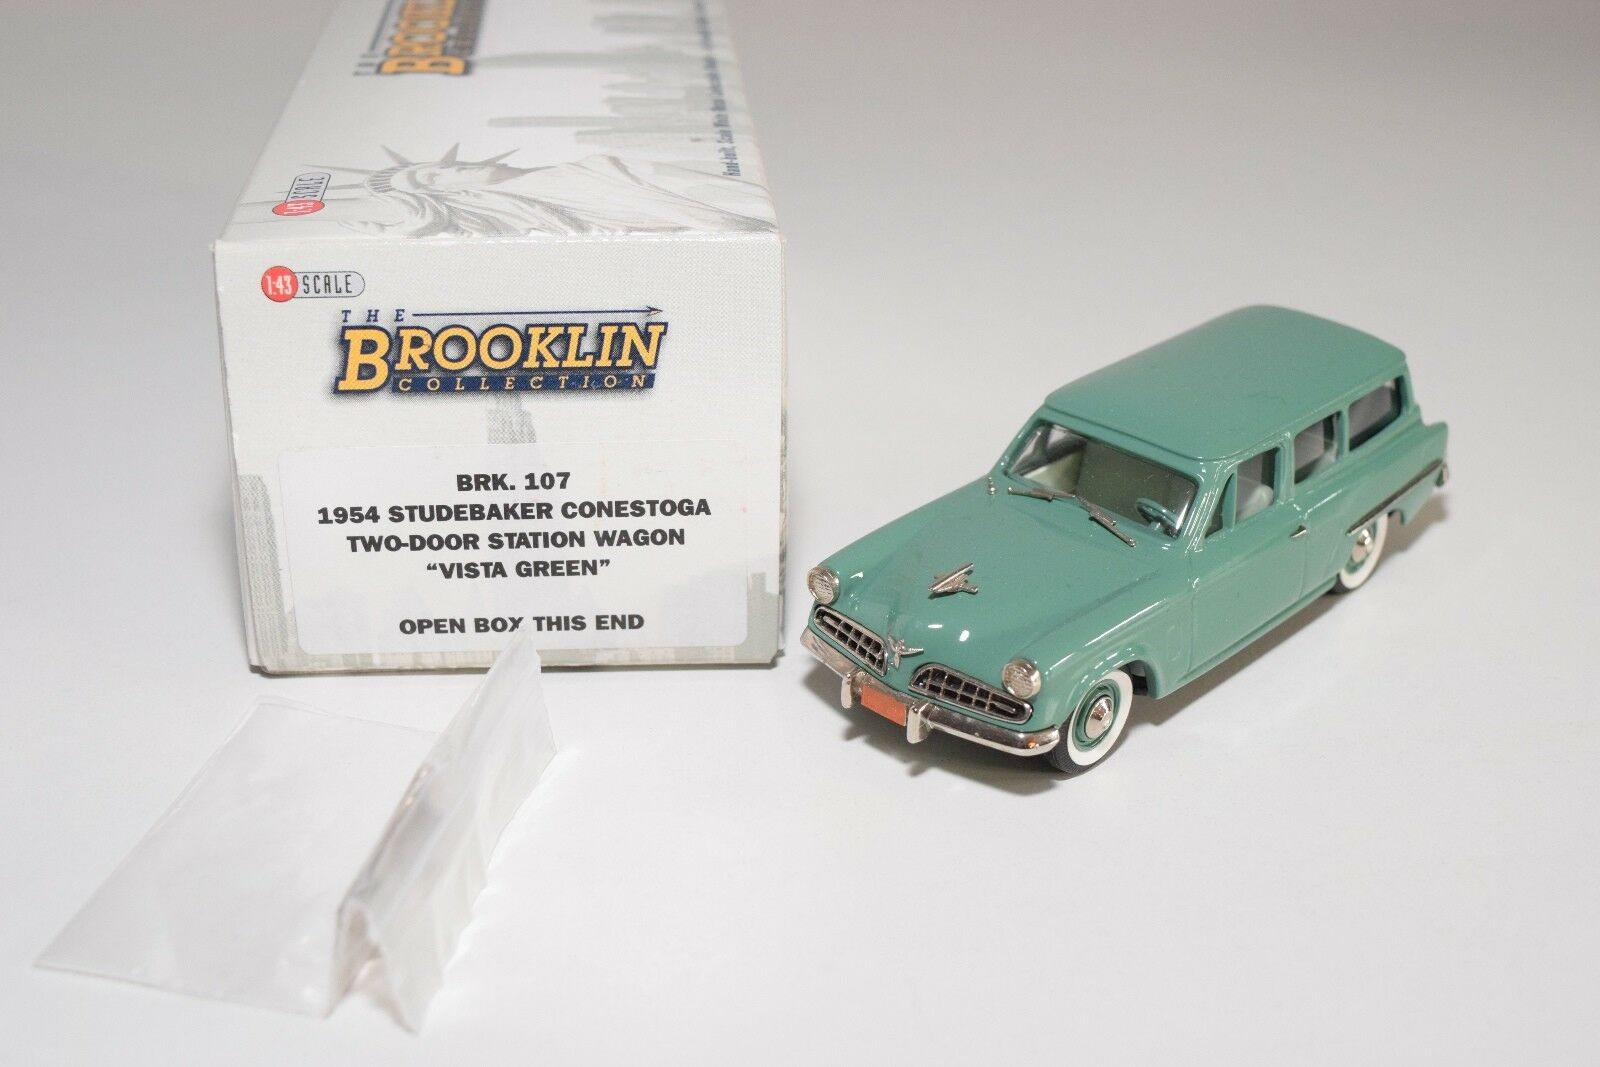 BROOKLIN BRK 107 1954 STUDEBAKER CONESTOGA TWO-DOOR STATION WAGON MINT BOXED